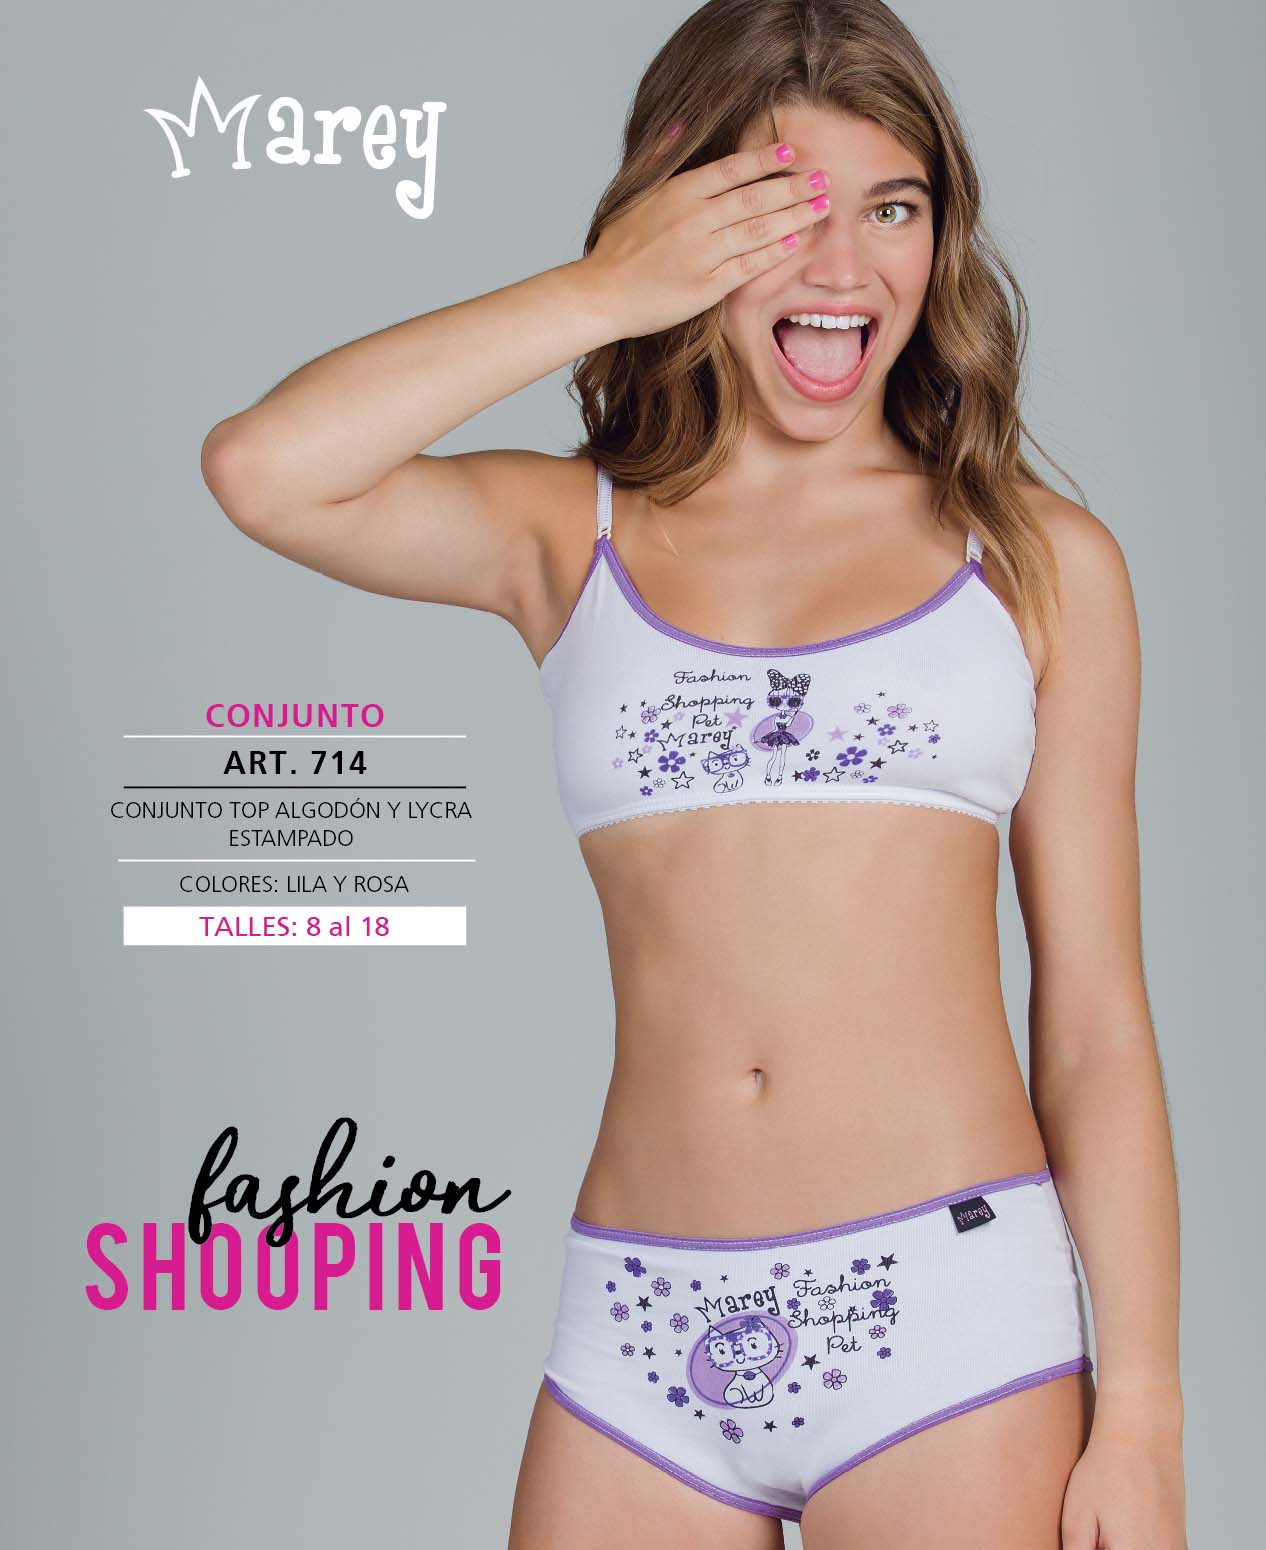 "Conj Top Algodon y Lycra estampado ""FASHION SHOPPING"""